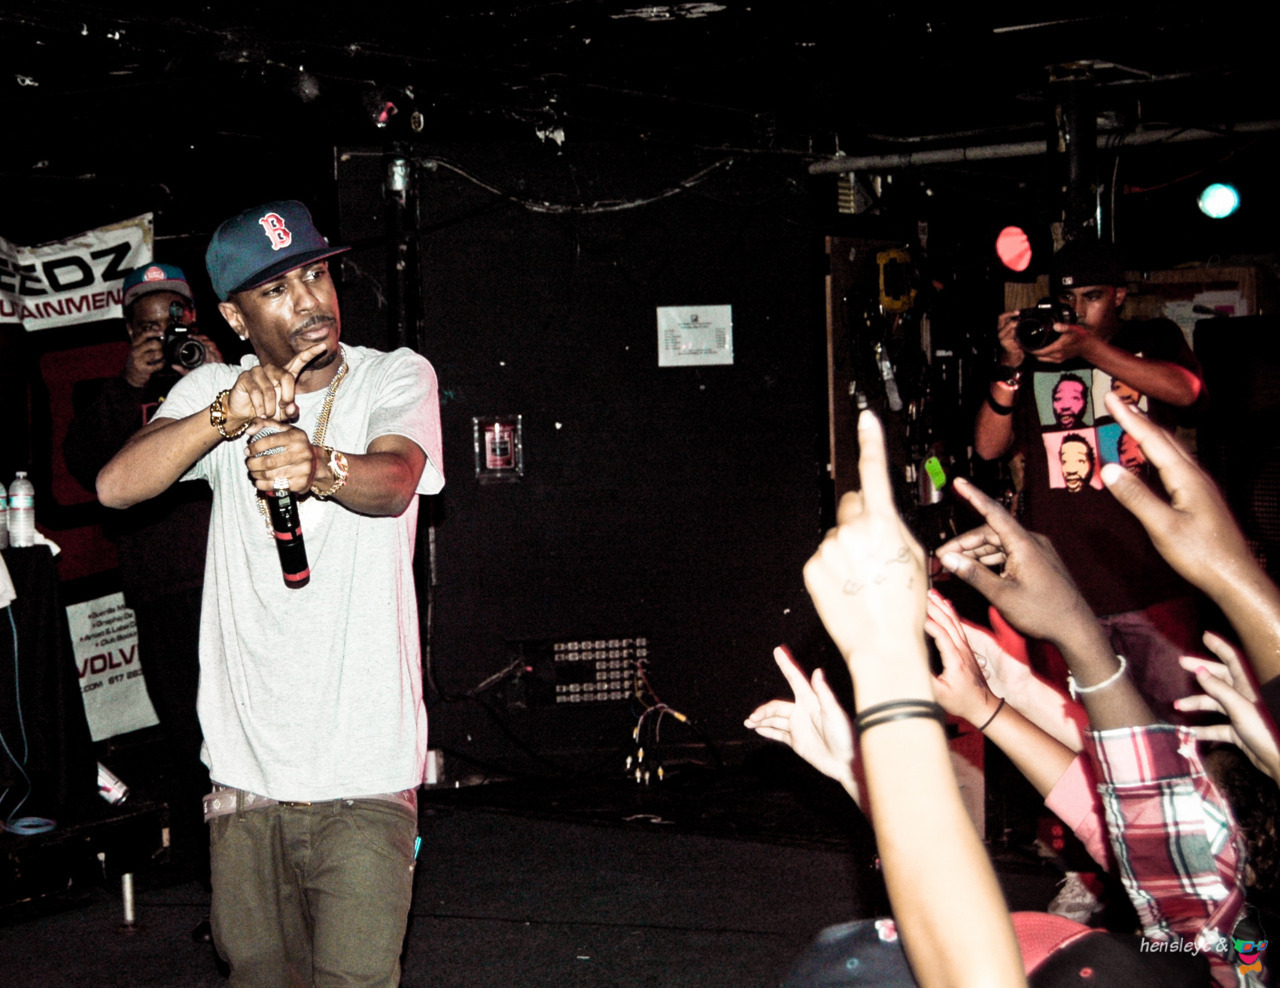 Big Sean performing at the Middle East Downstairs in Cambridge, Mass. (Just outside of Boston). (5/5/11)